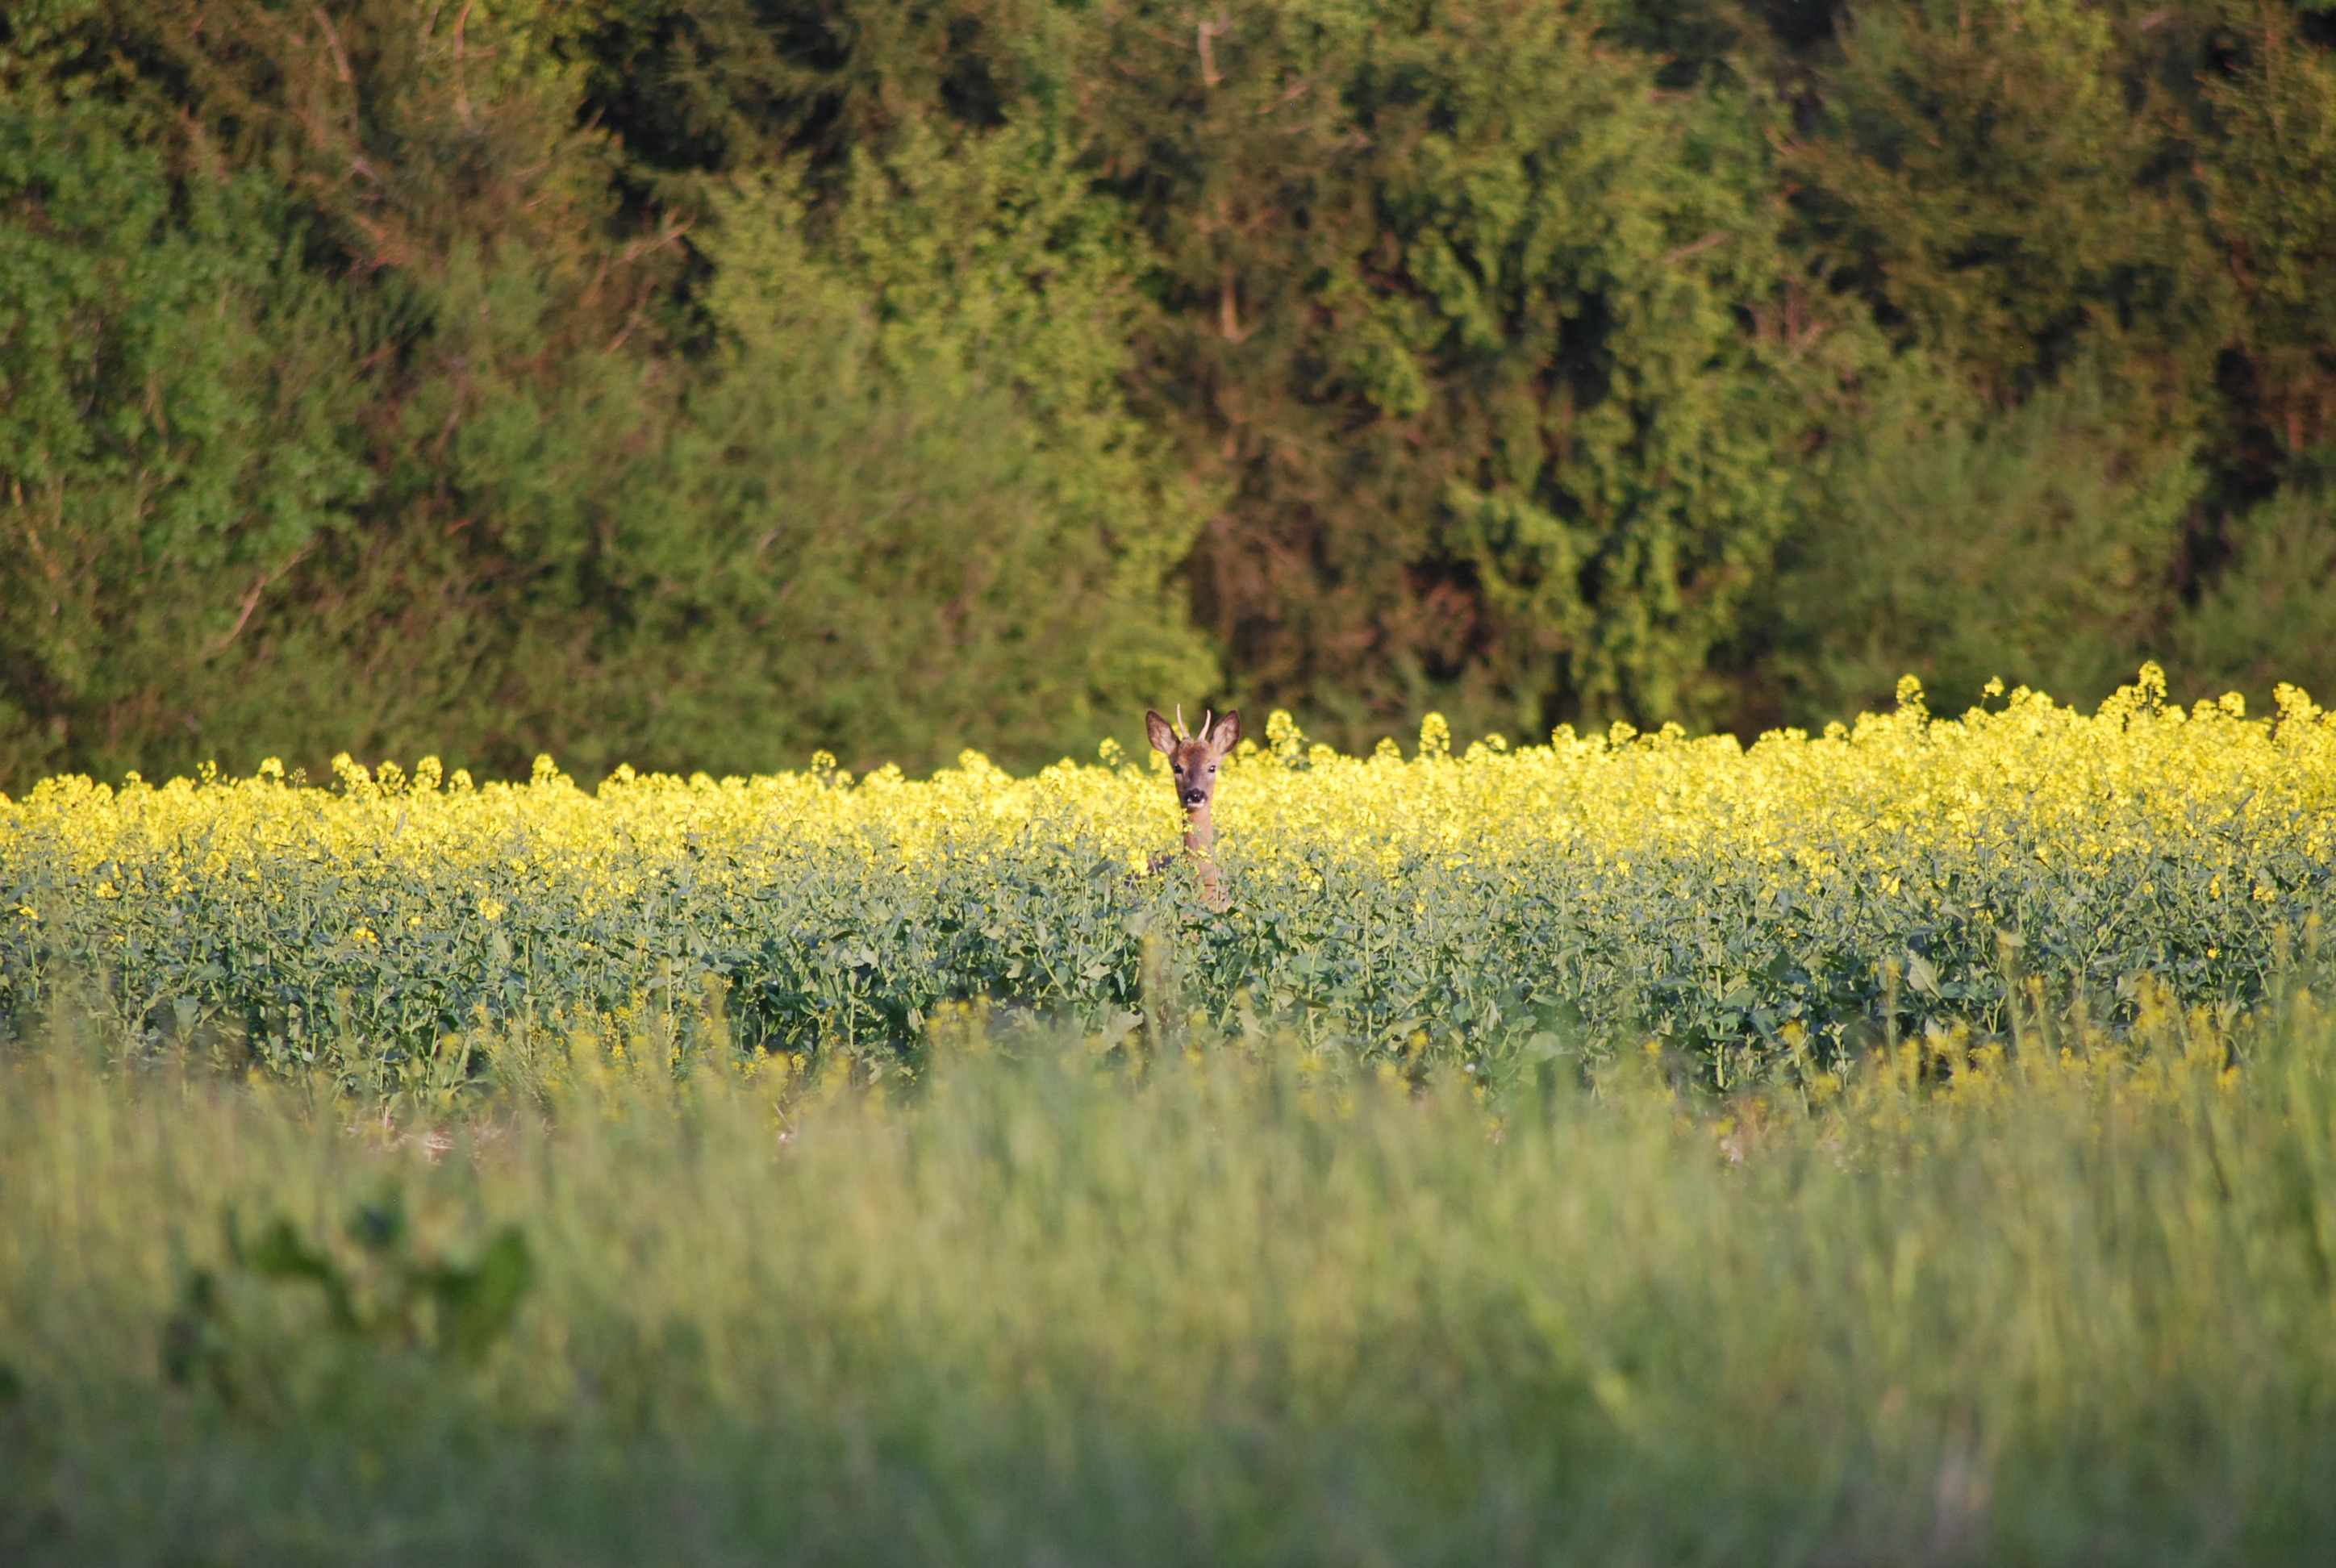 Roe deer stalking